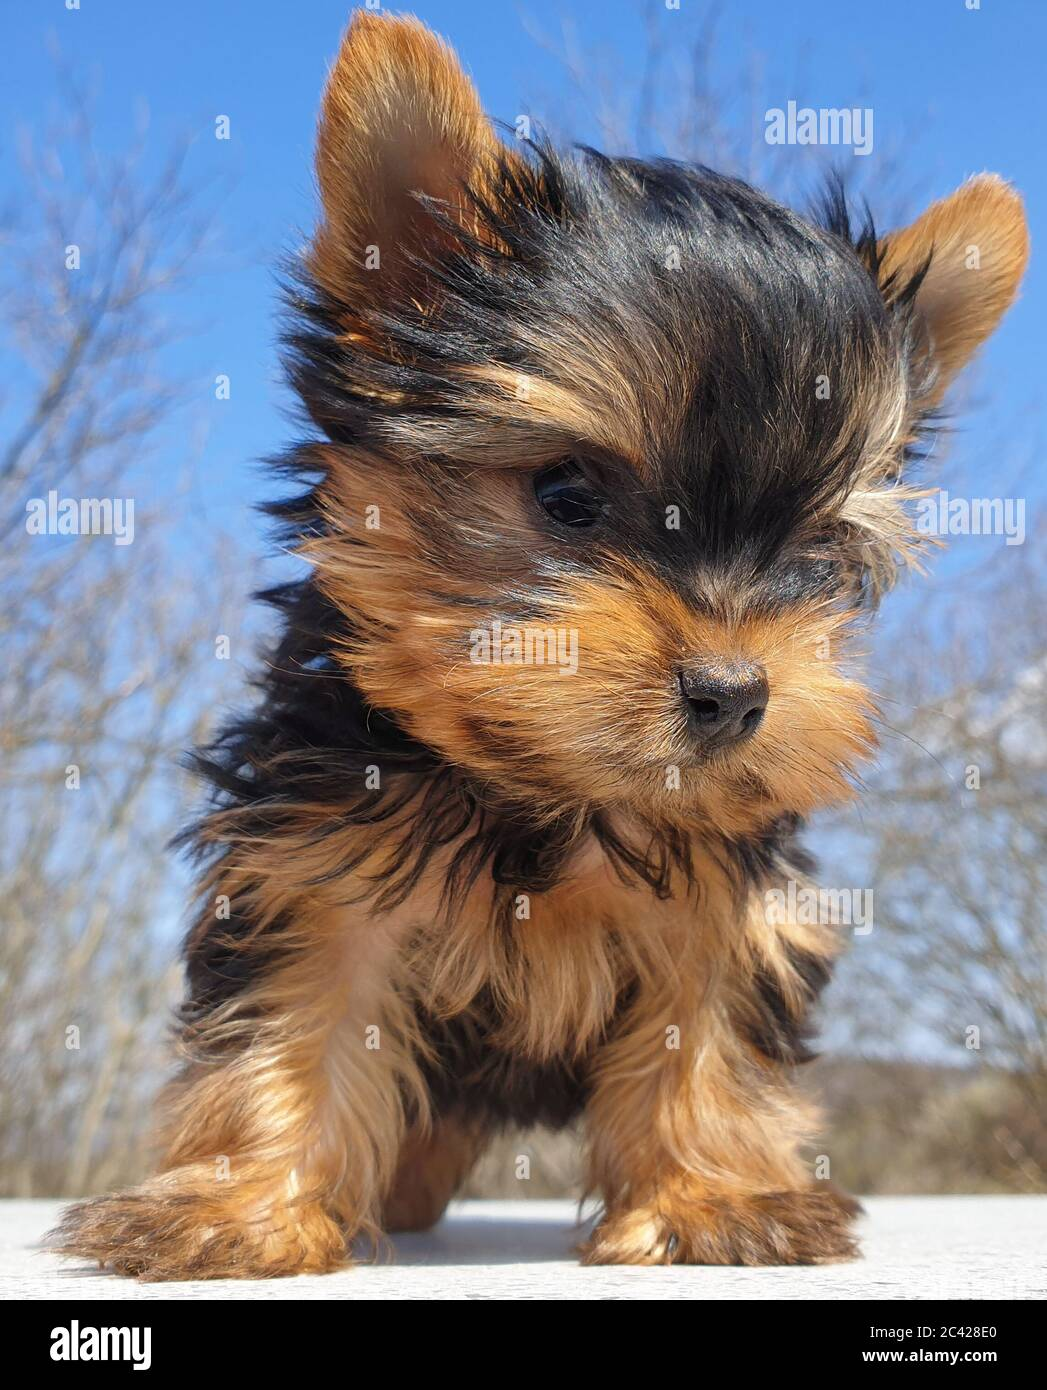 Closeup Of Playful Baby Yorkshire Terrier Puppy Outside Front Portrait And Detail Of Young And Cute Yorkie Pup Playing Outside With Blurred Backgrou Stock Photo Alamy